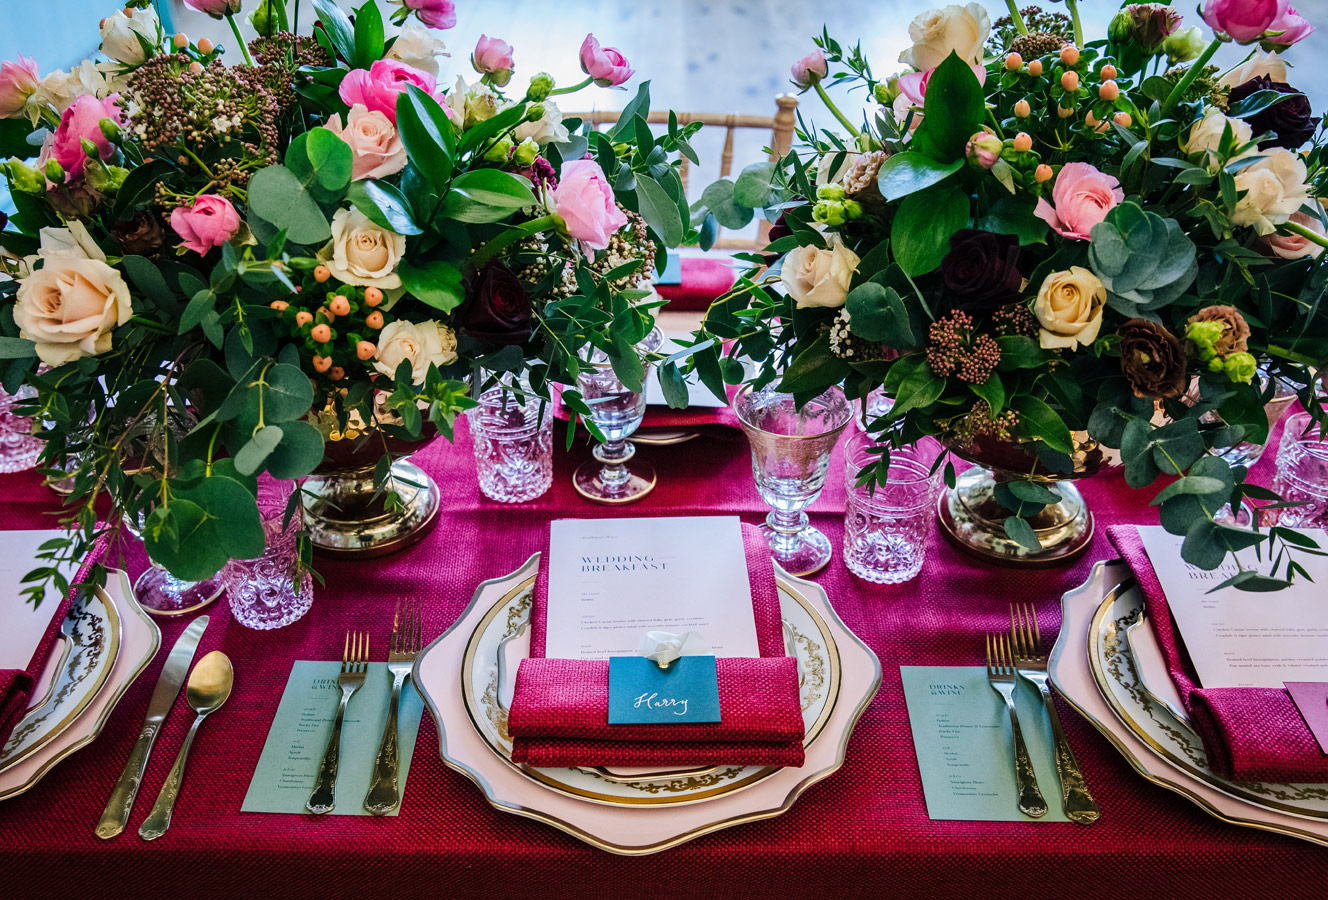 Spring wedding tablecentres with compote bowls and burgundy styling.